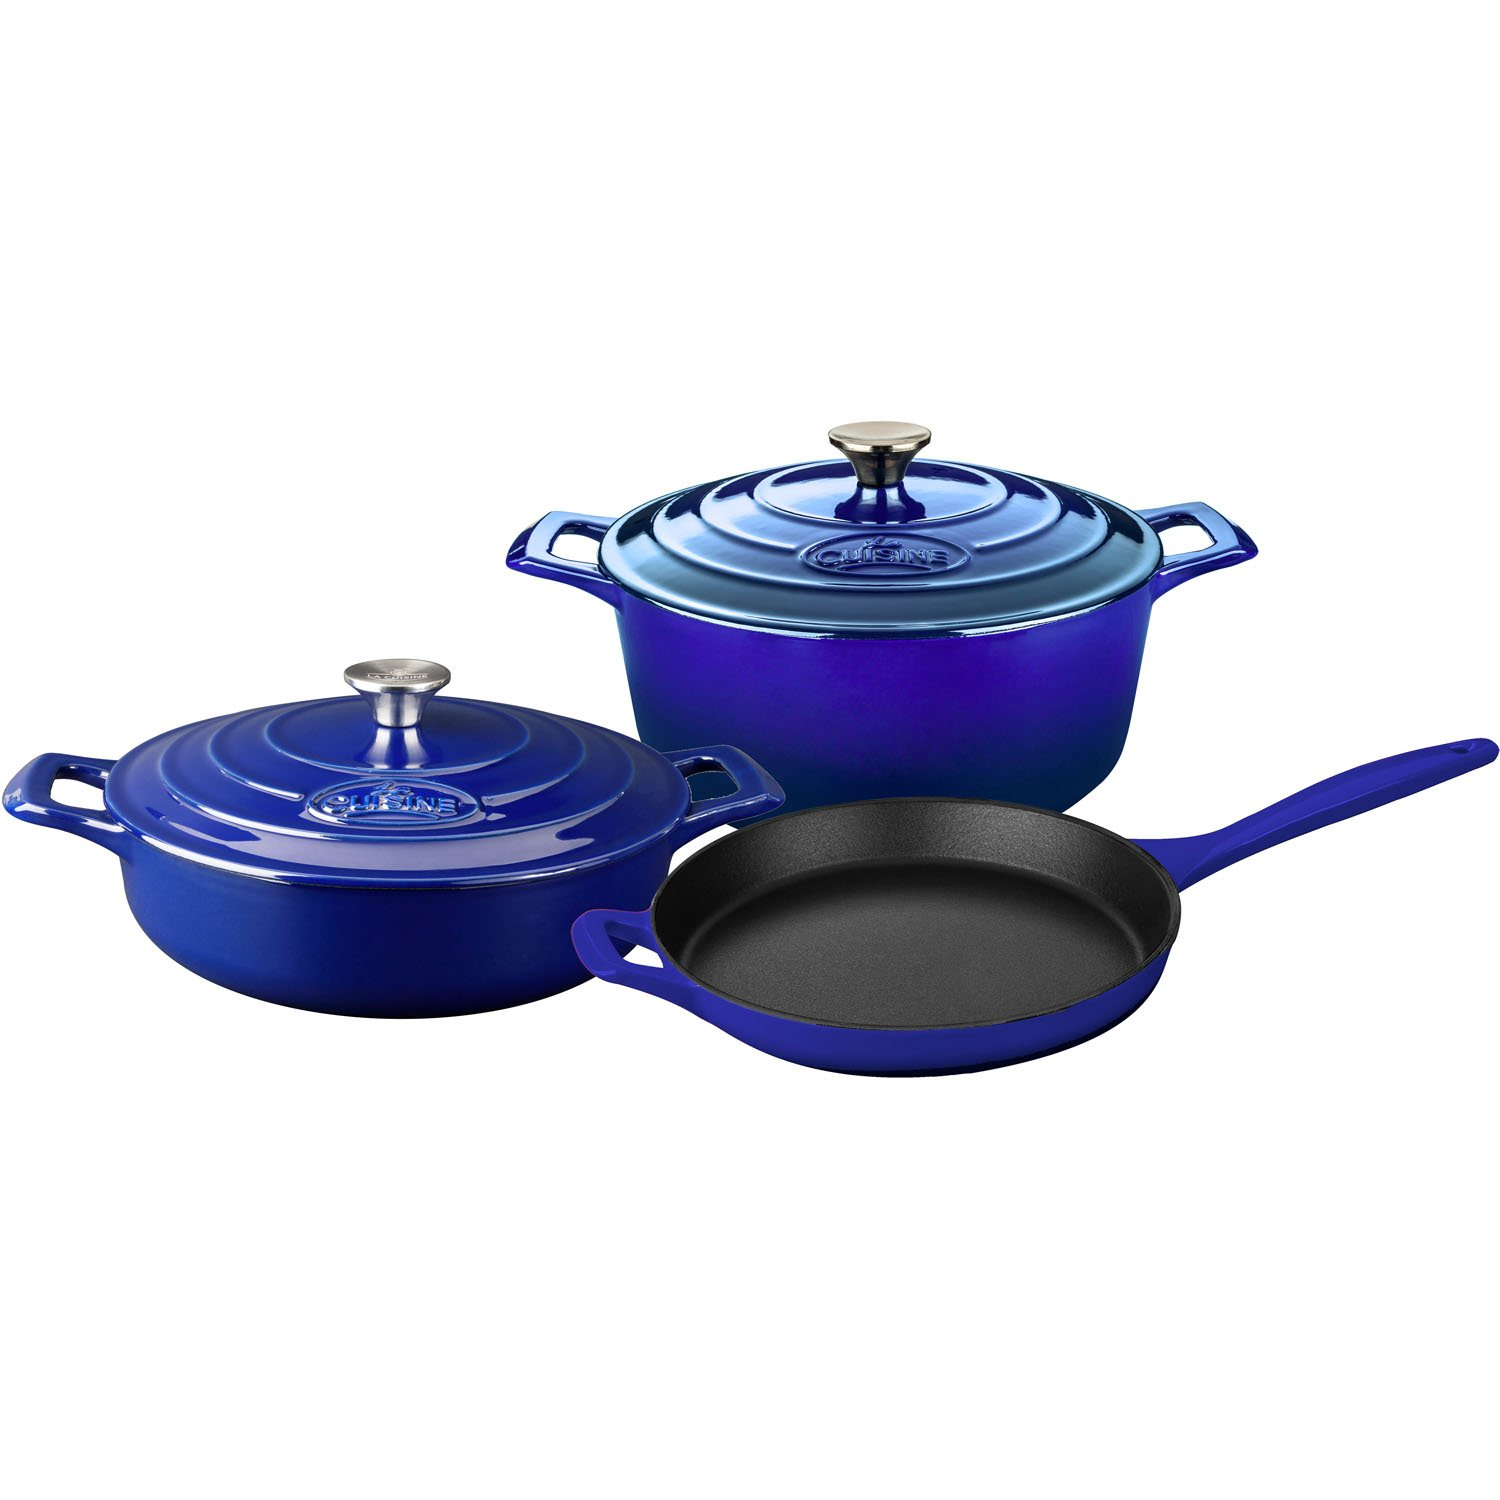 La Cuisine LC 2679MB PRO 5-Piece Enameled Cast Iron Cookware Set in High Gloss Sapphire (Round Casserole),